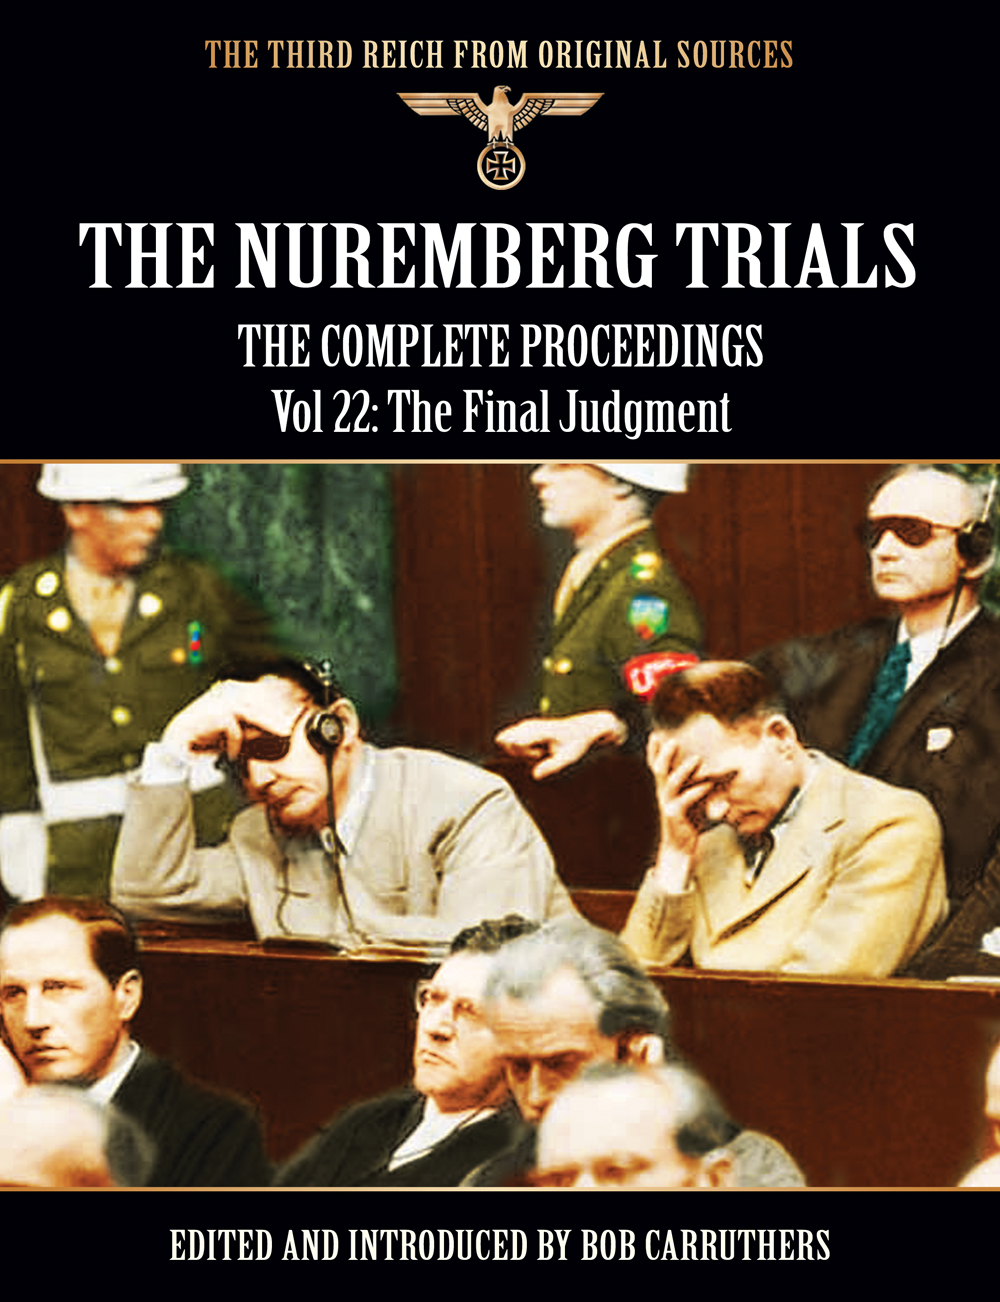 The Nuremberg Trials - The Complete Proceedings Vol 22: The Final Judgment By: Bob Carruthers